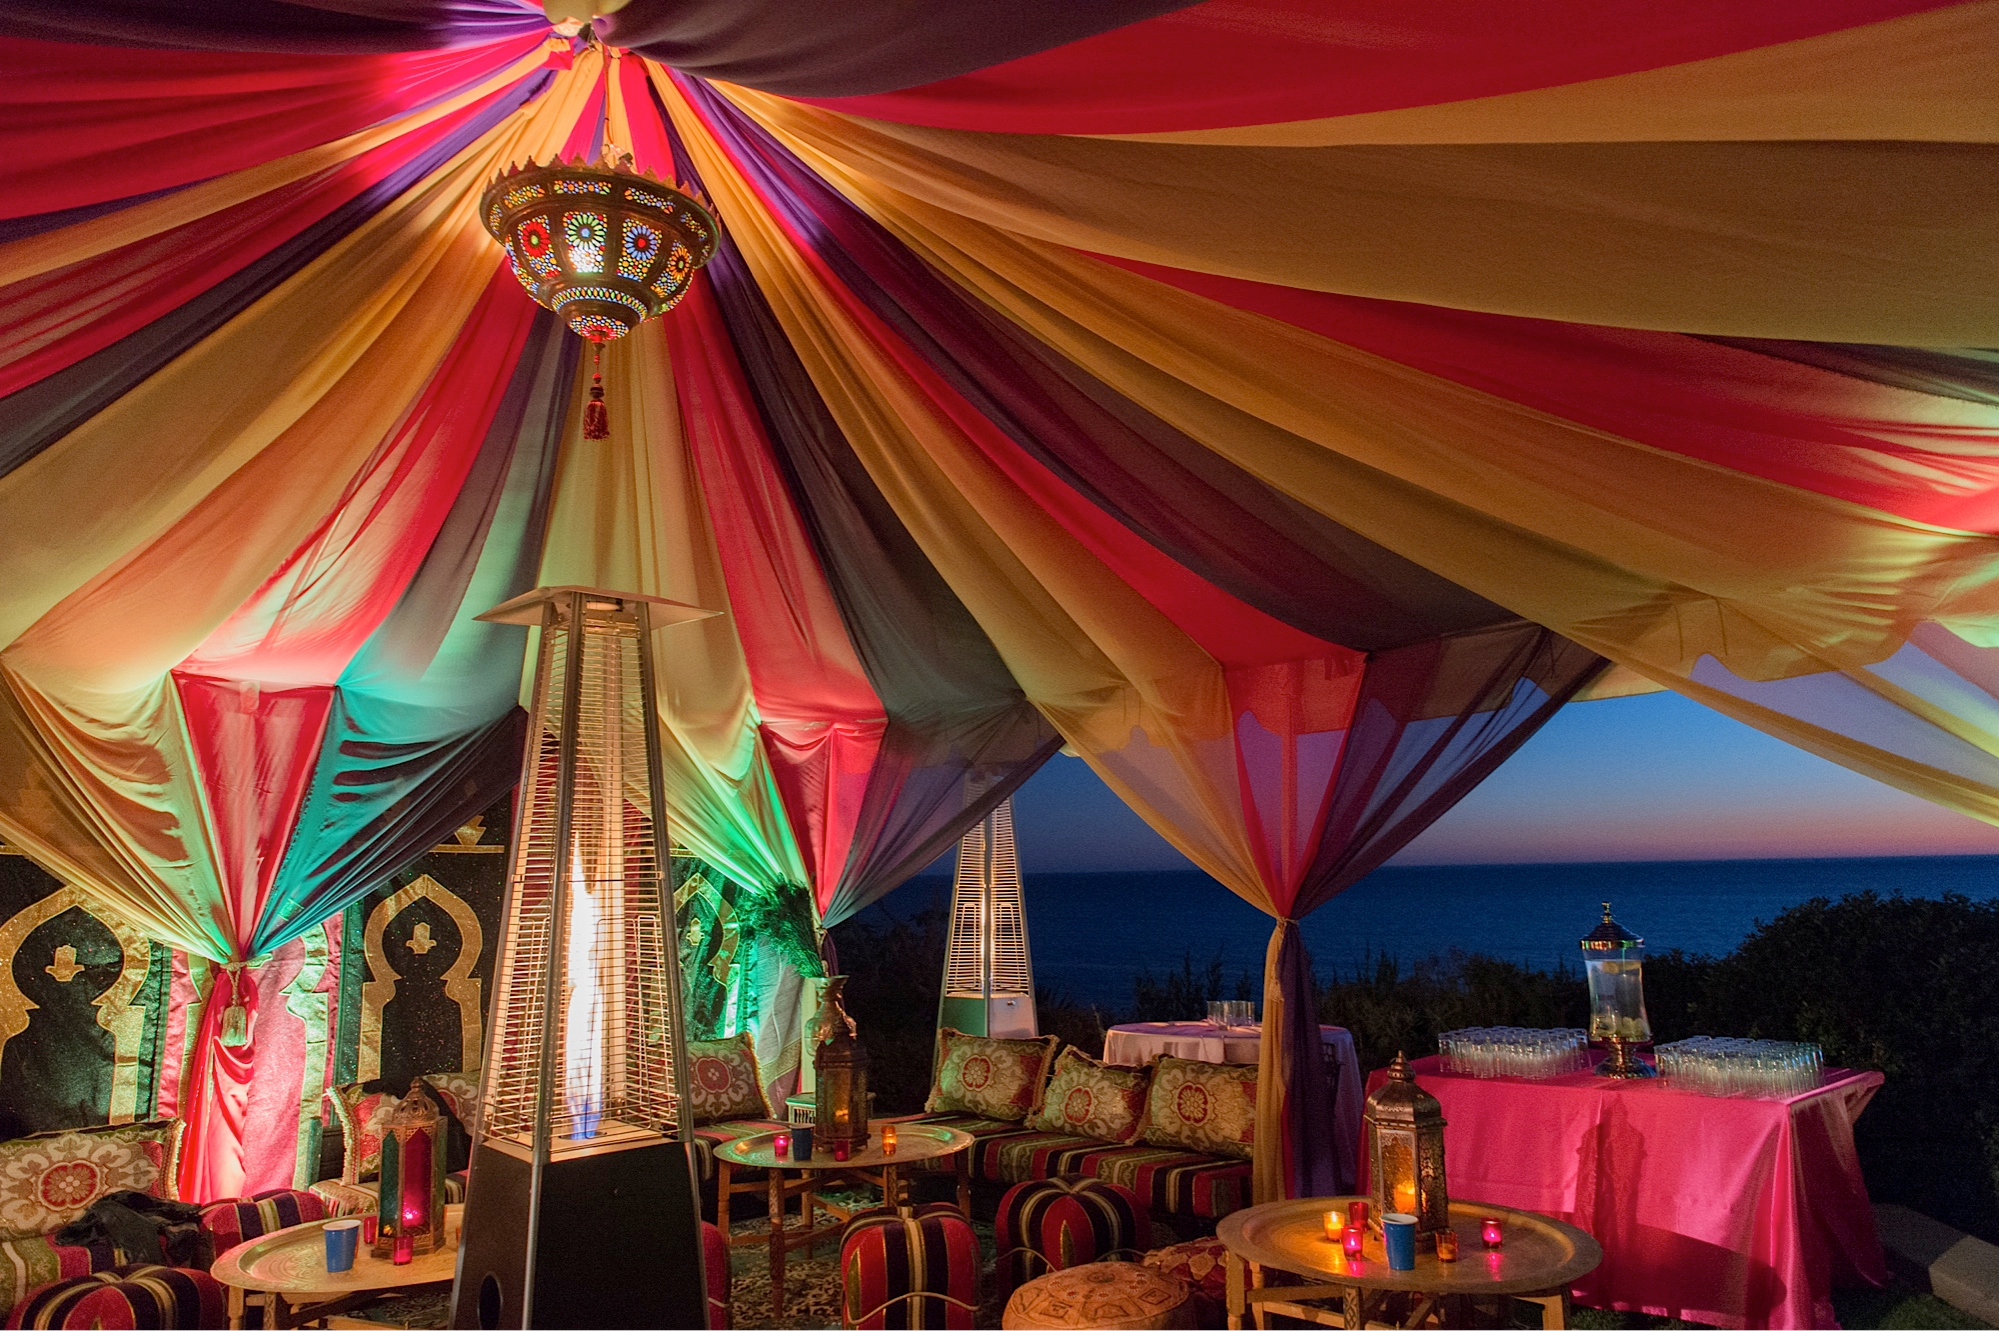 Moroccan/Arabian Nights birthday theme party. Tent with